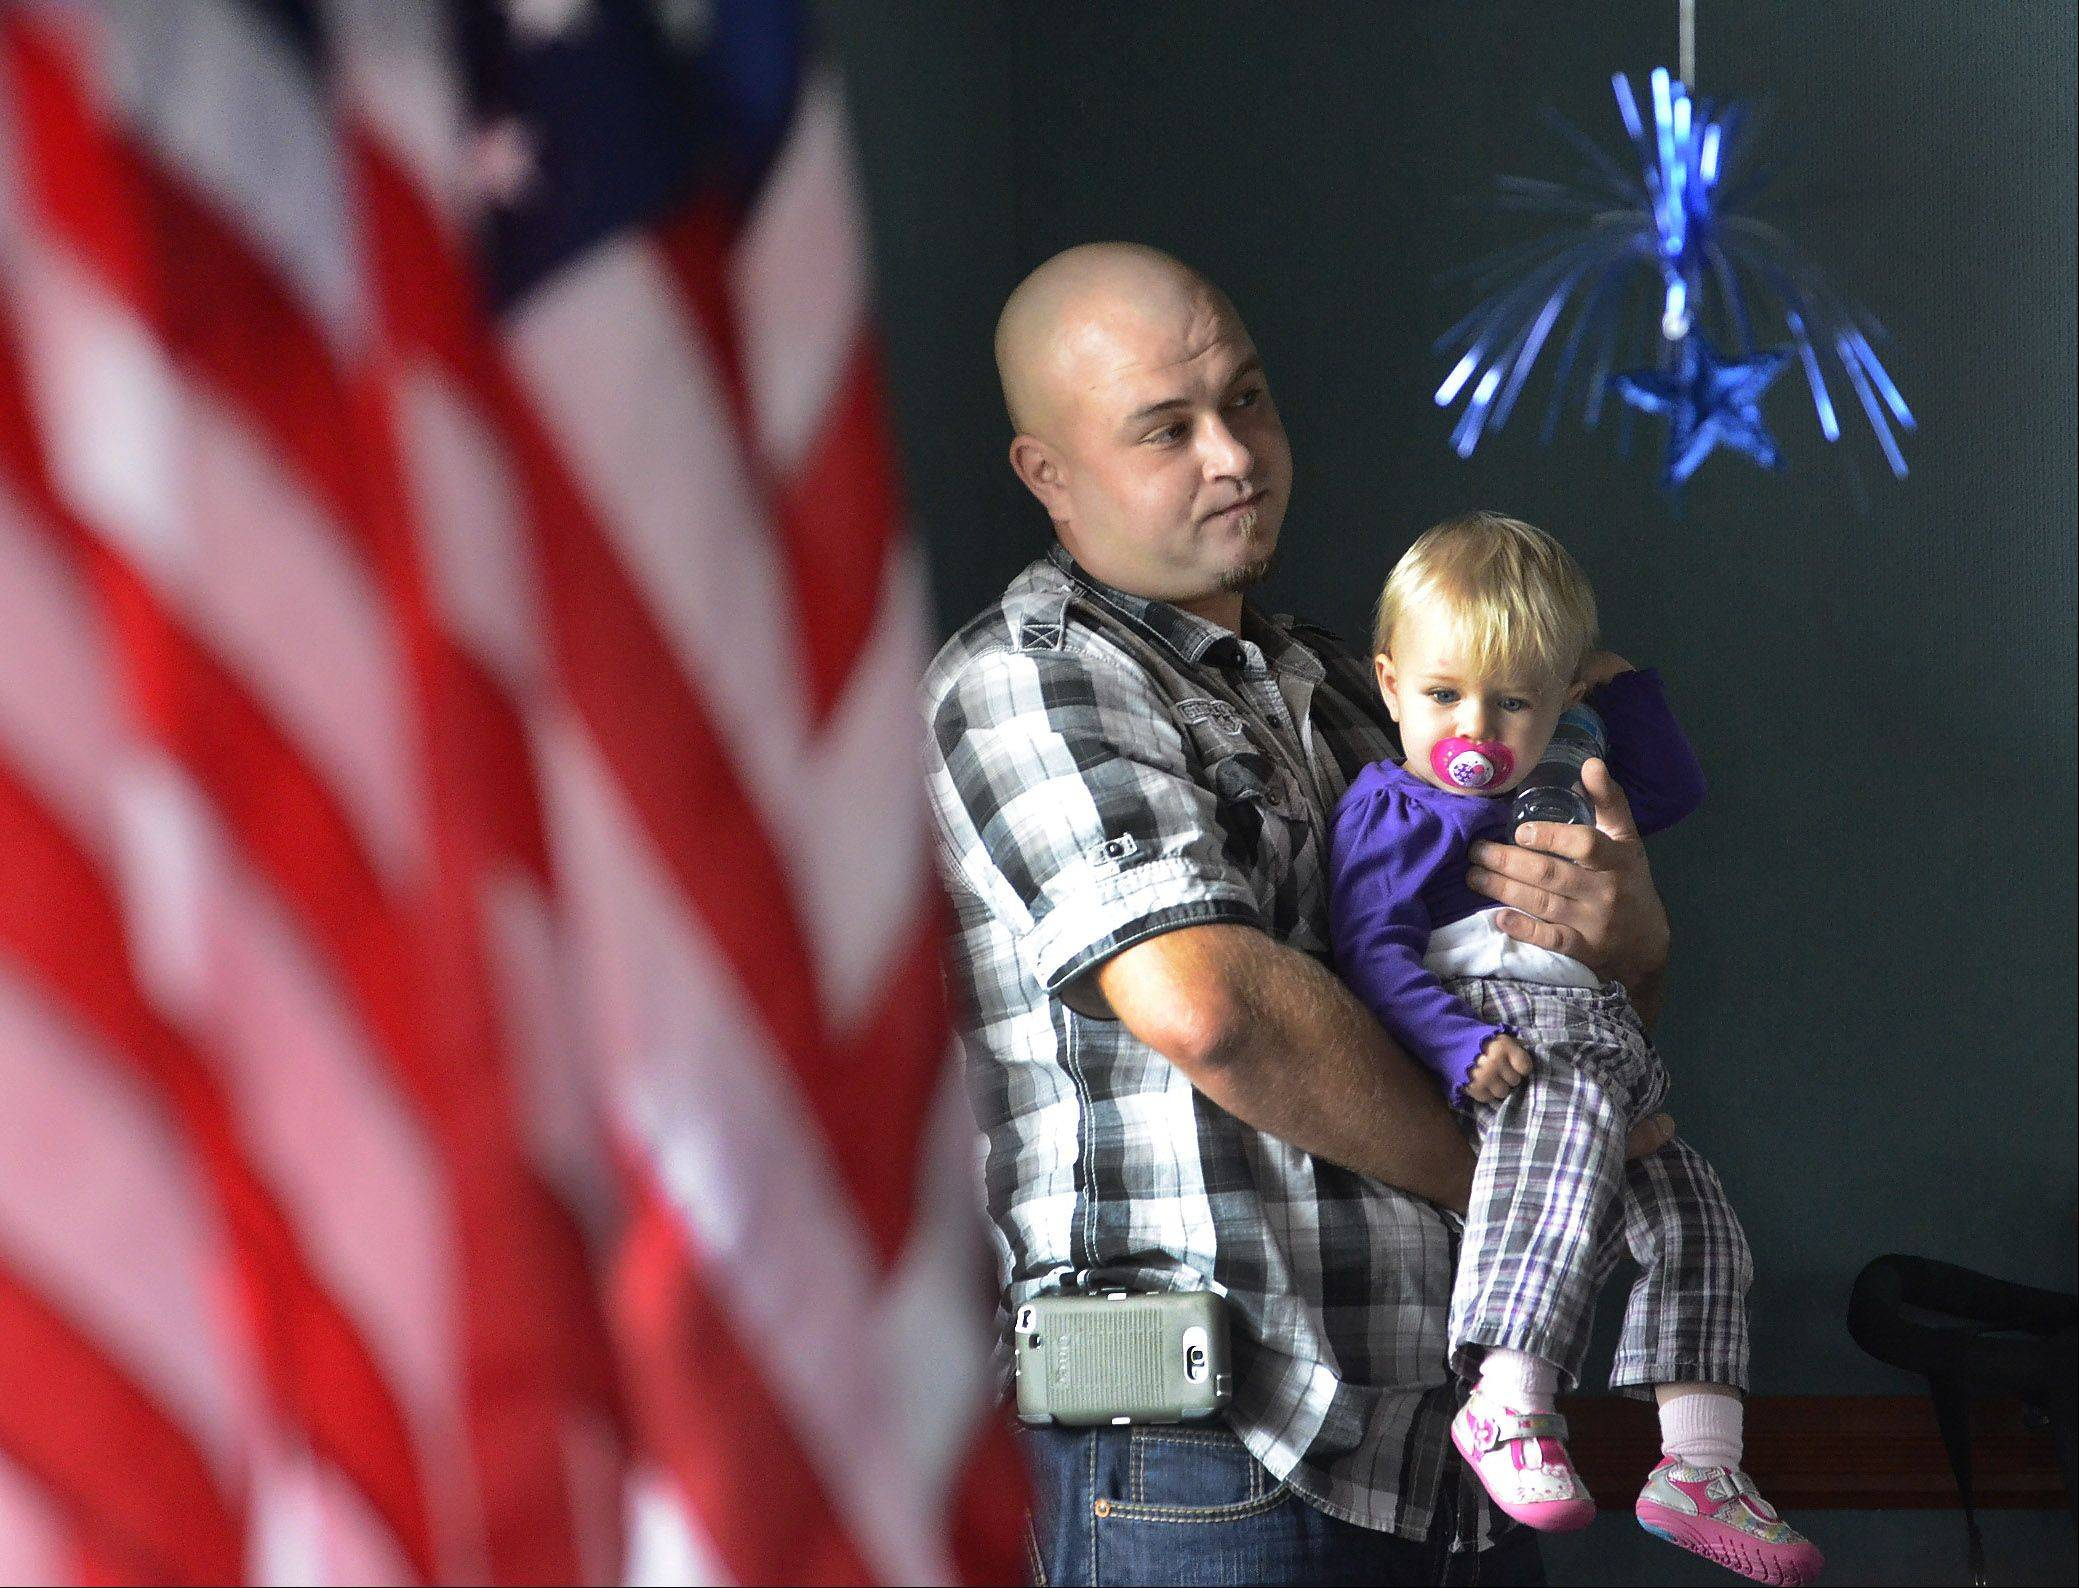 Pawel Gogola of Algonquin holds his daughter, Natalie, while watching his wife, Wioletta, of Poland receive her citizenship Friday during a naturalization ceremony at the Schaumburg Township District Library.